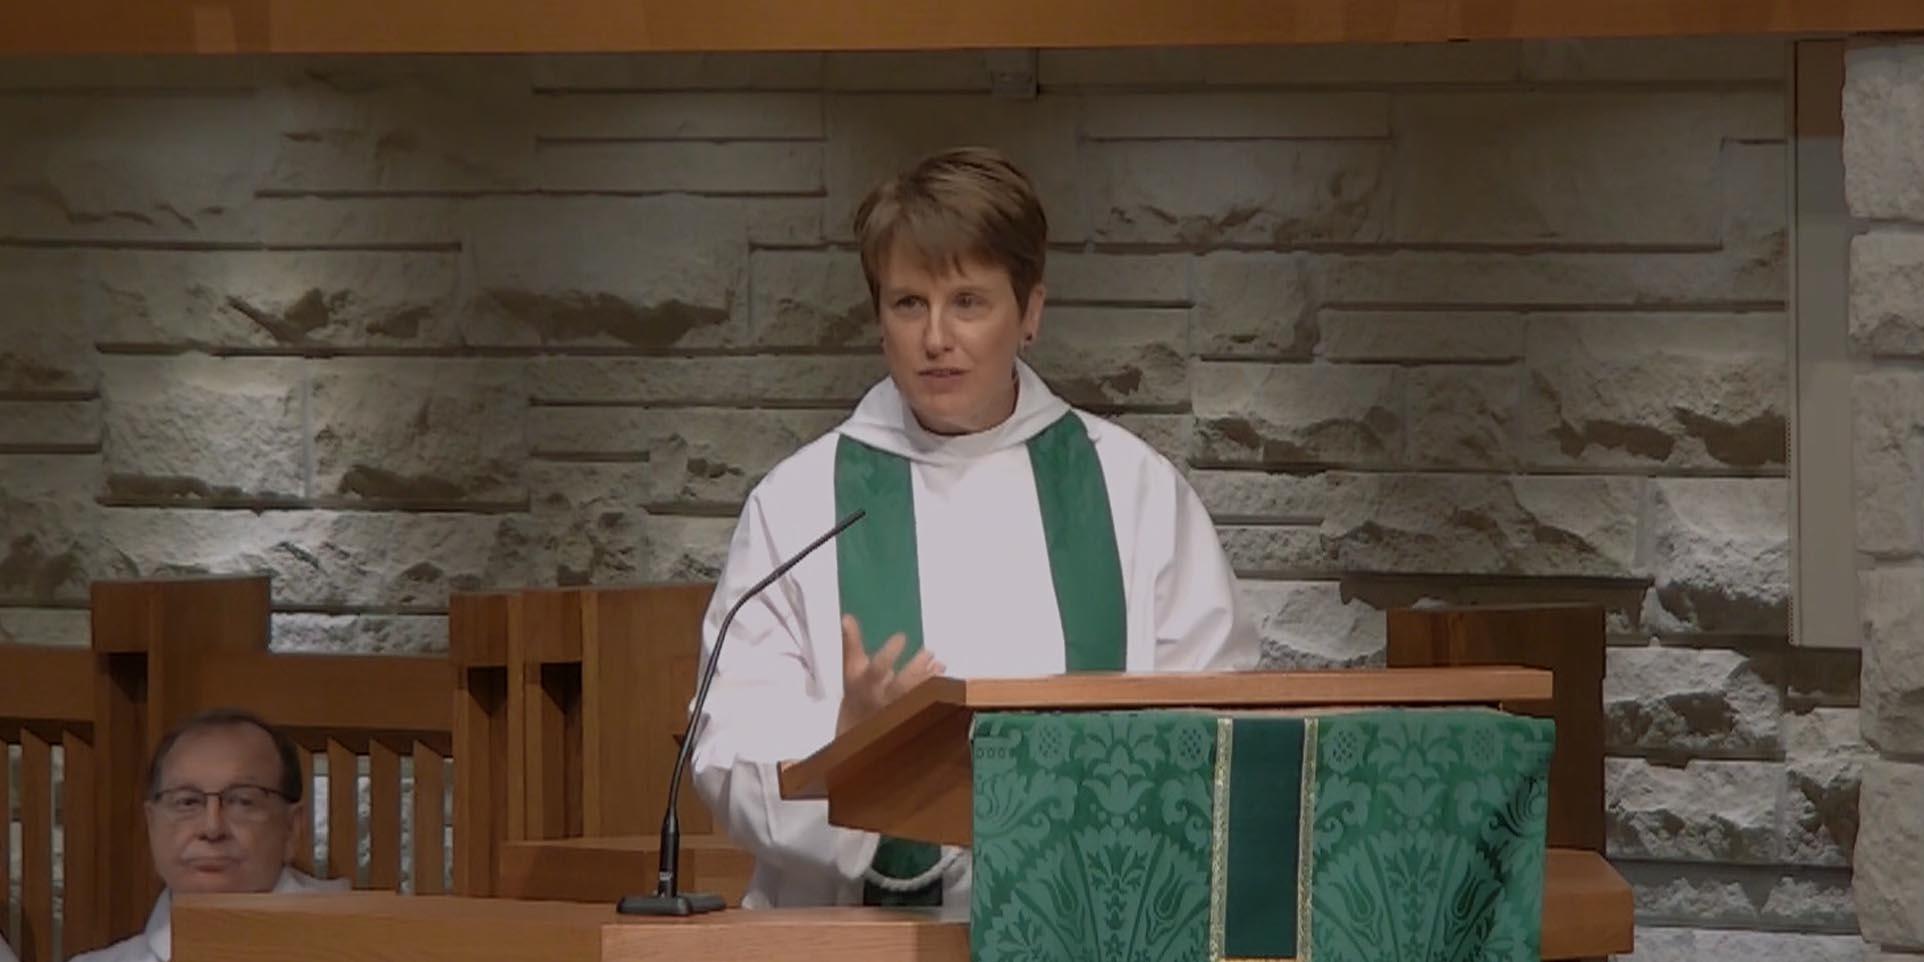 Dance of Love - Sermon by the Rev. Louise Samuelson